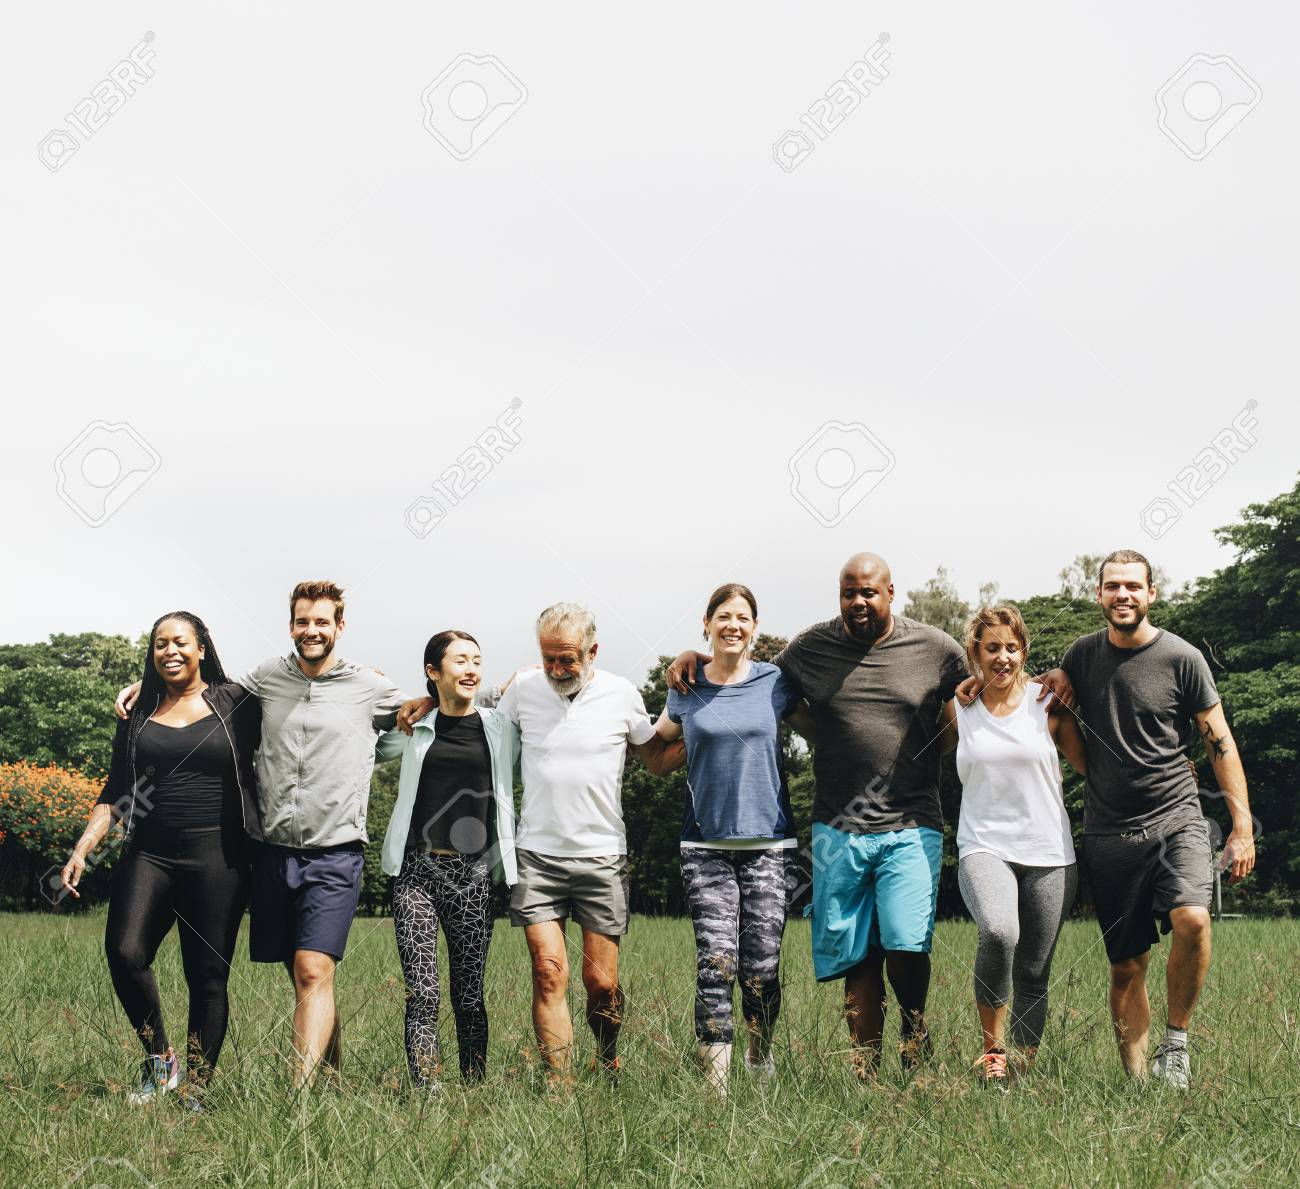 Group of people hugging each other in the park - 112593702